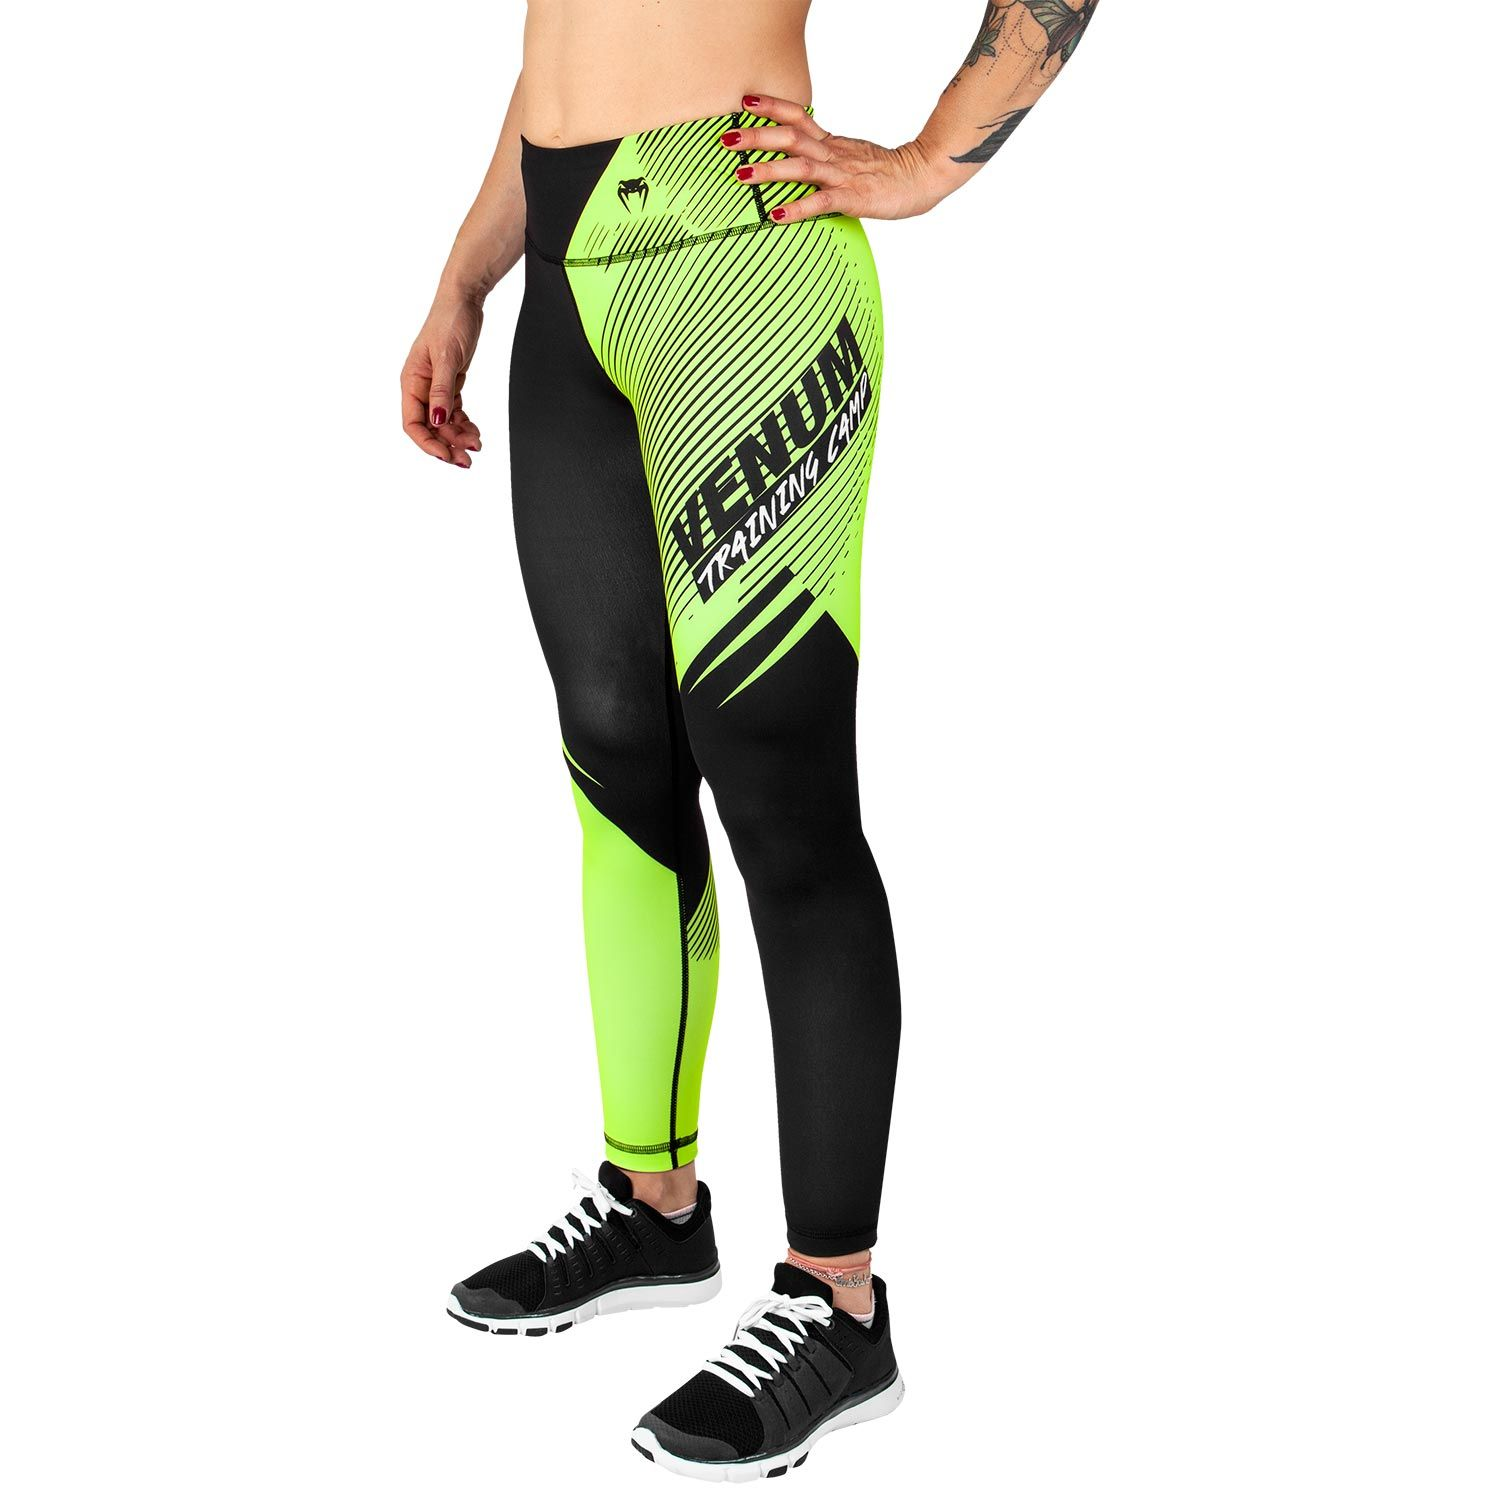 Venum Training Camp 2.0 Leggings - Black/Neo Yellow - For Women